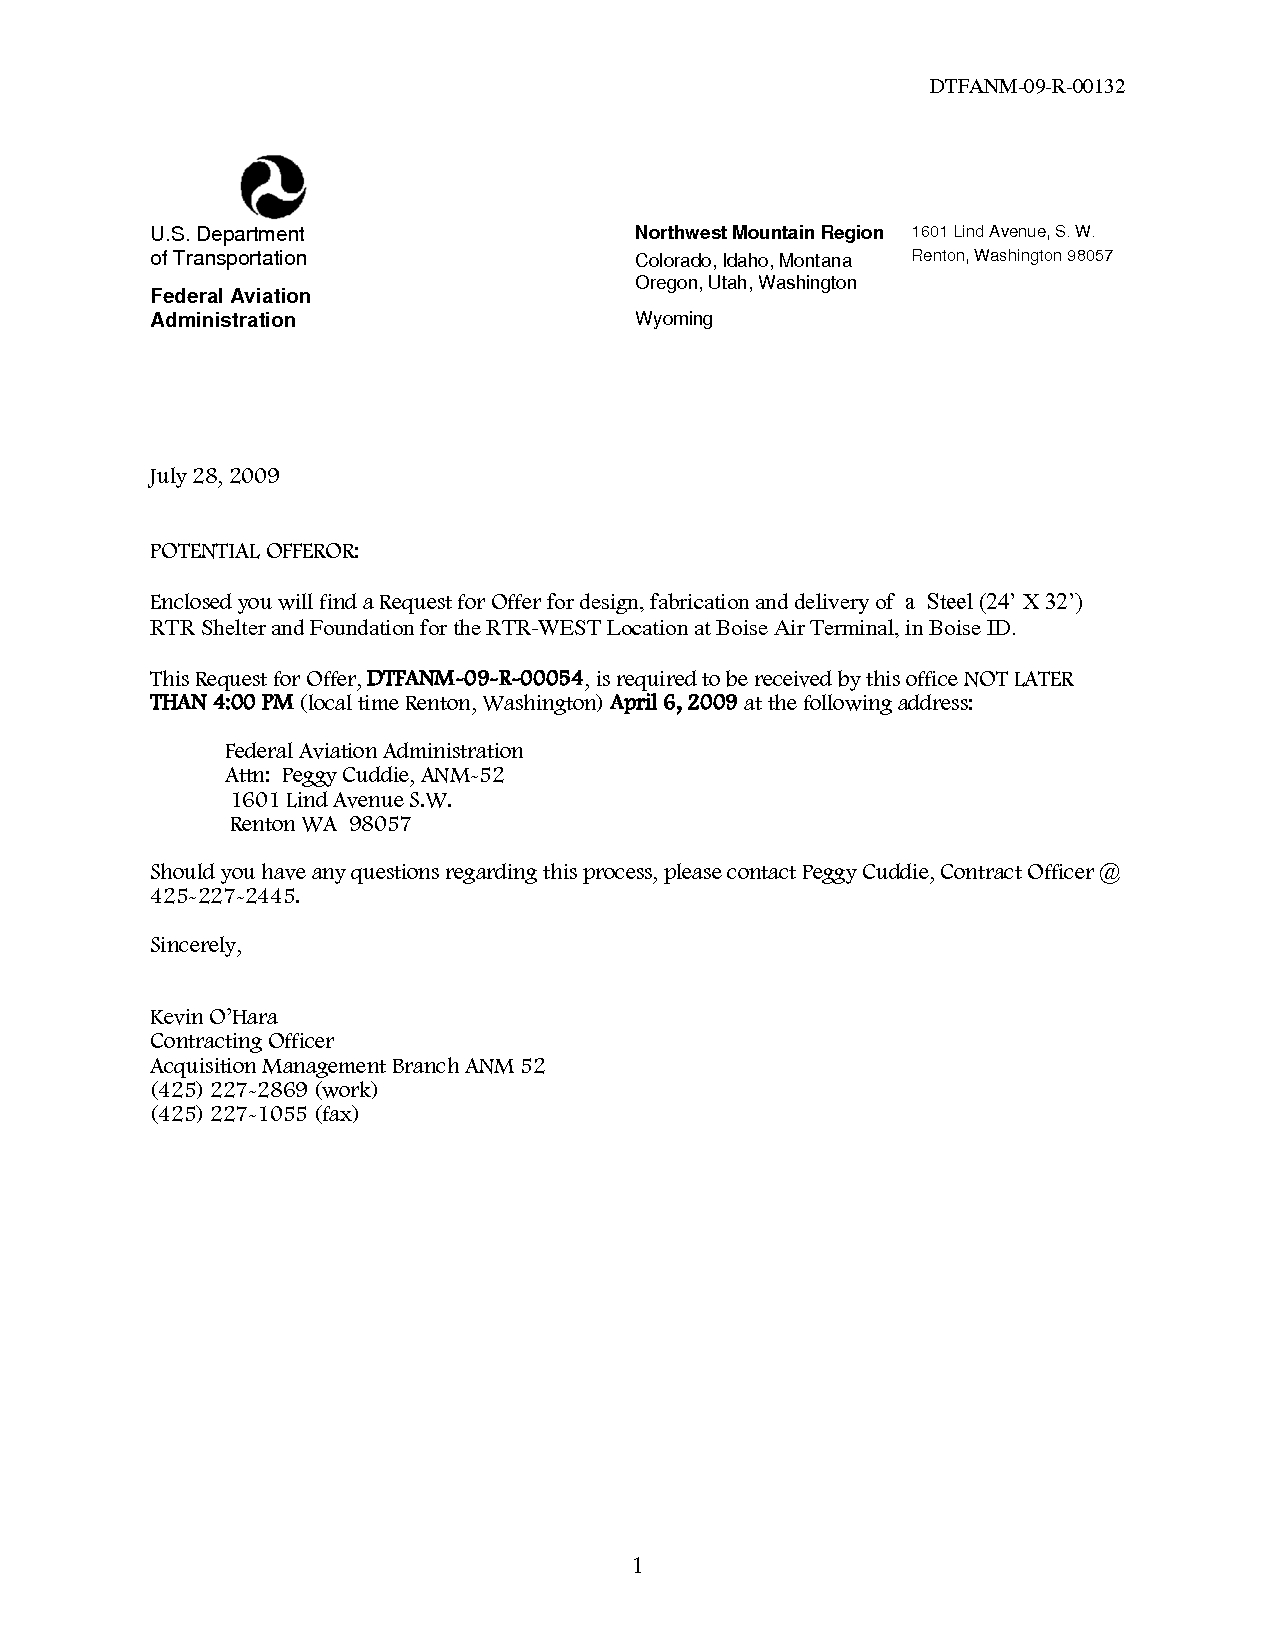 Rental Reference Letter Template - 18 Sample Reference Letter From Employer